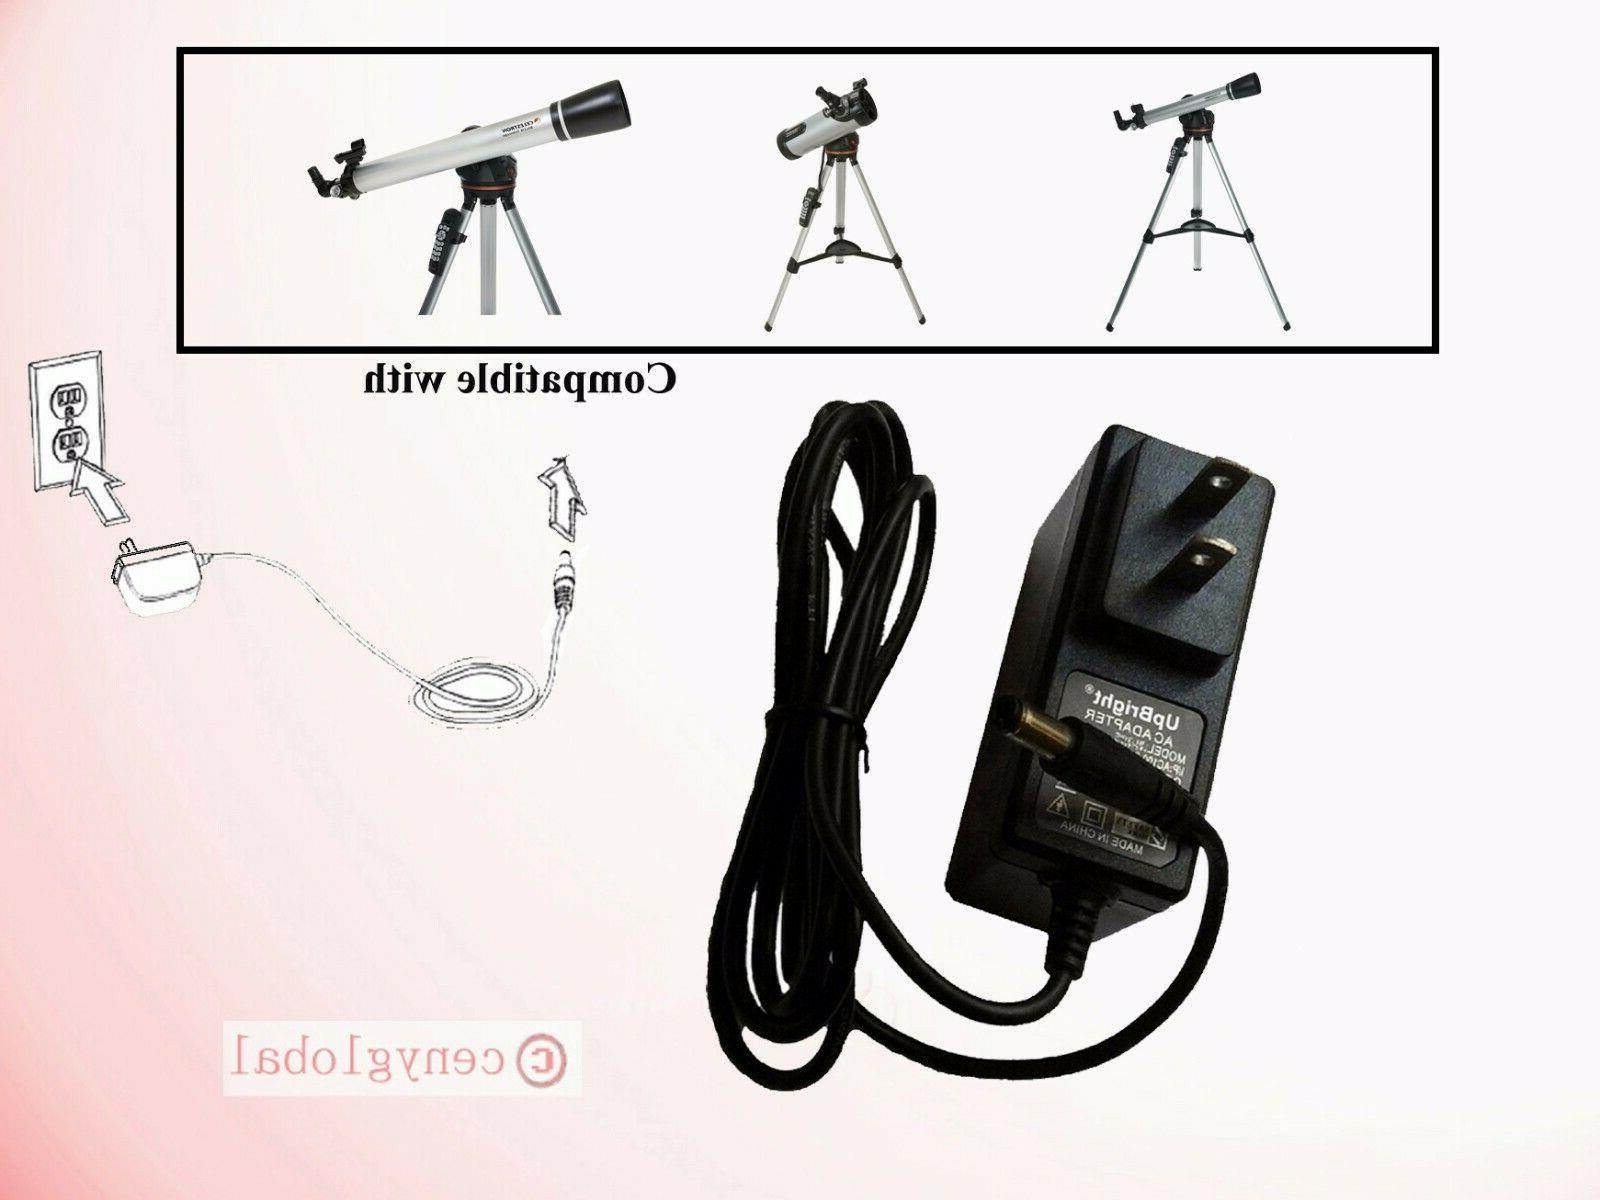 ac adapter charger for celestron lcm series